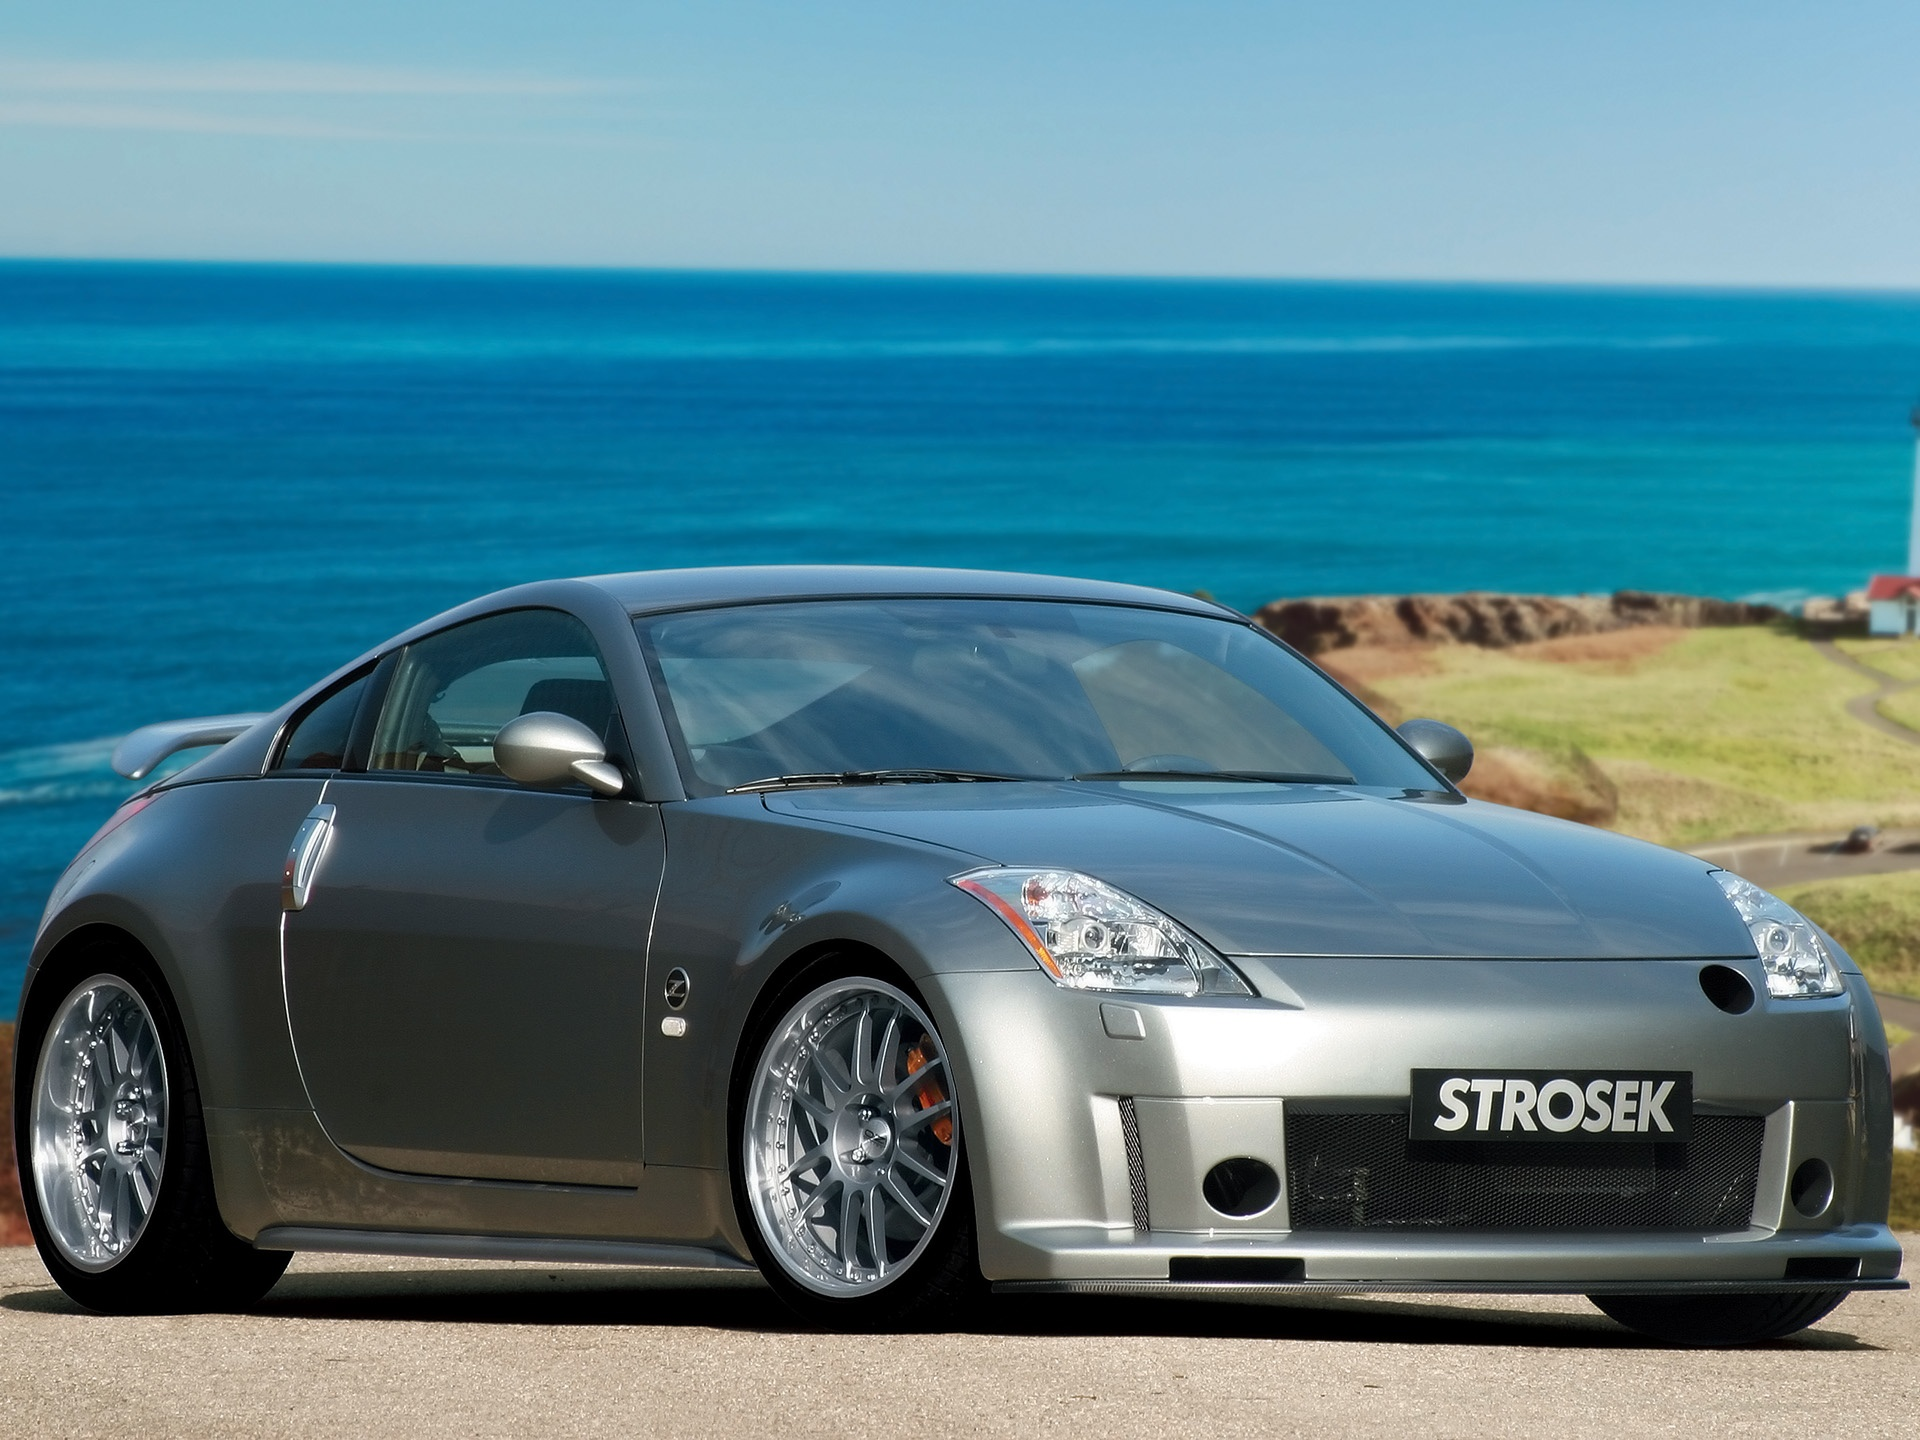 1920x1440 Strosek Nissan 350z Desktop Pc And Mac Wallpaper HD Wallpapers Download free images and photos [musssic.tk]